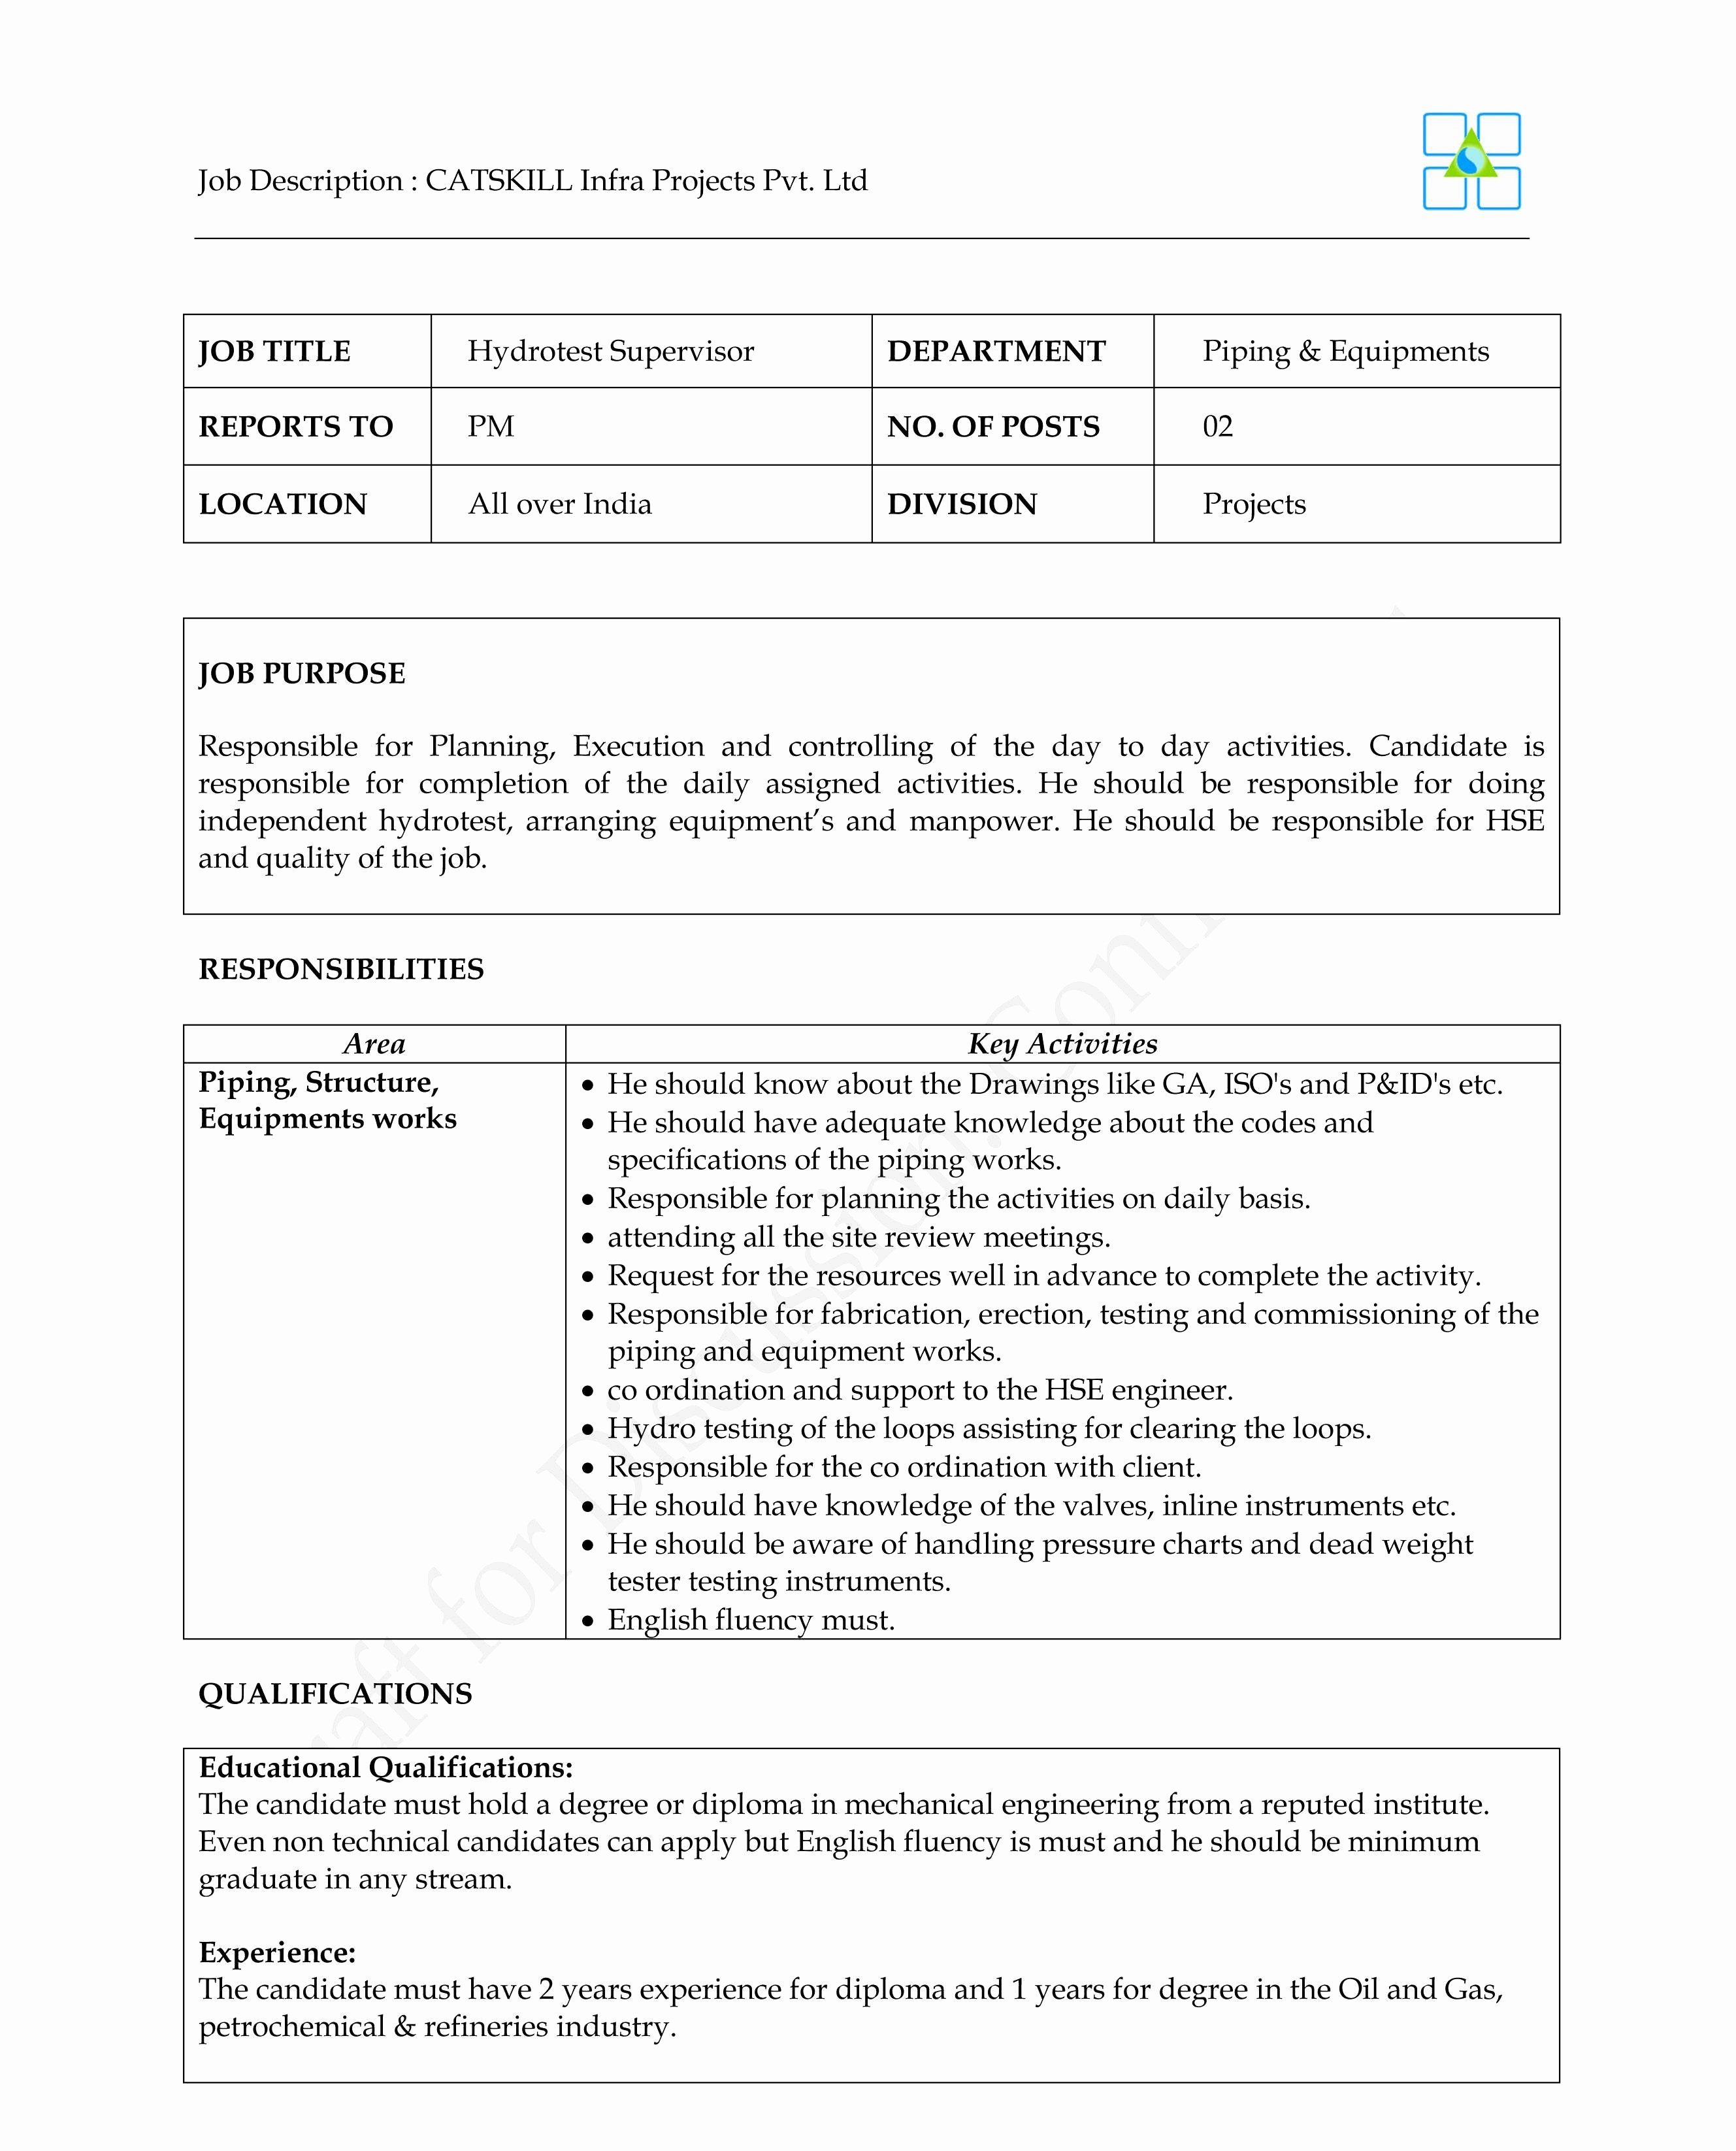 Best Place to Post Resume Luxury for Server Position